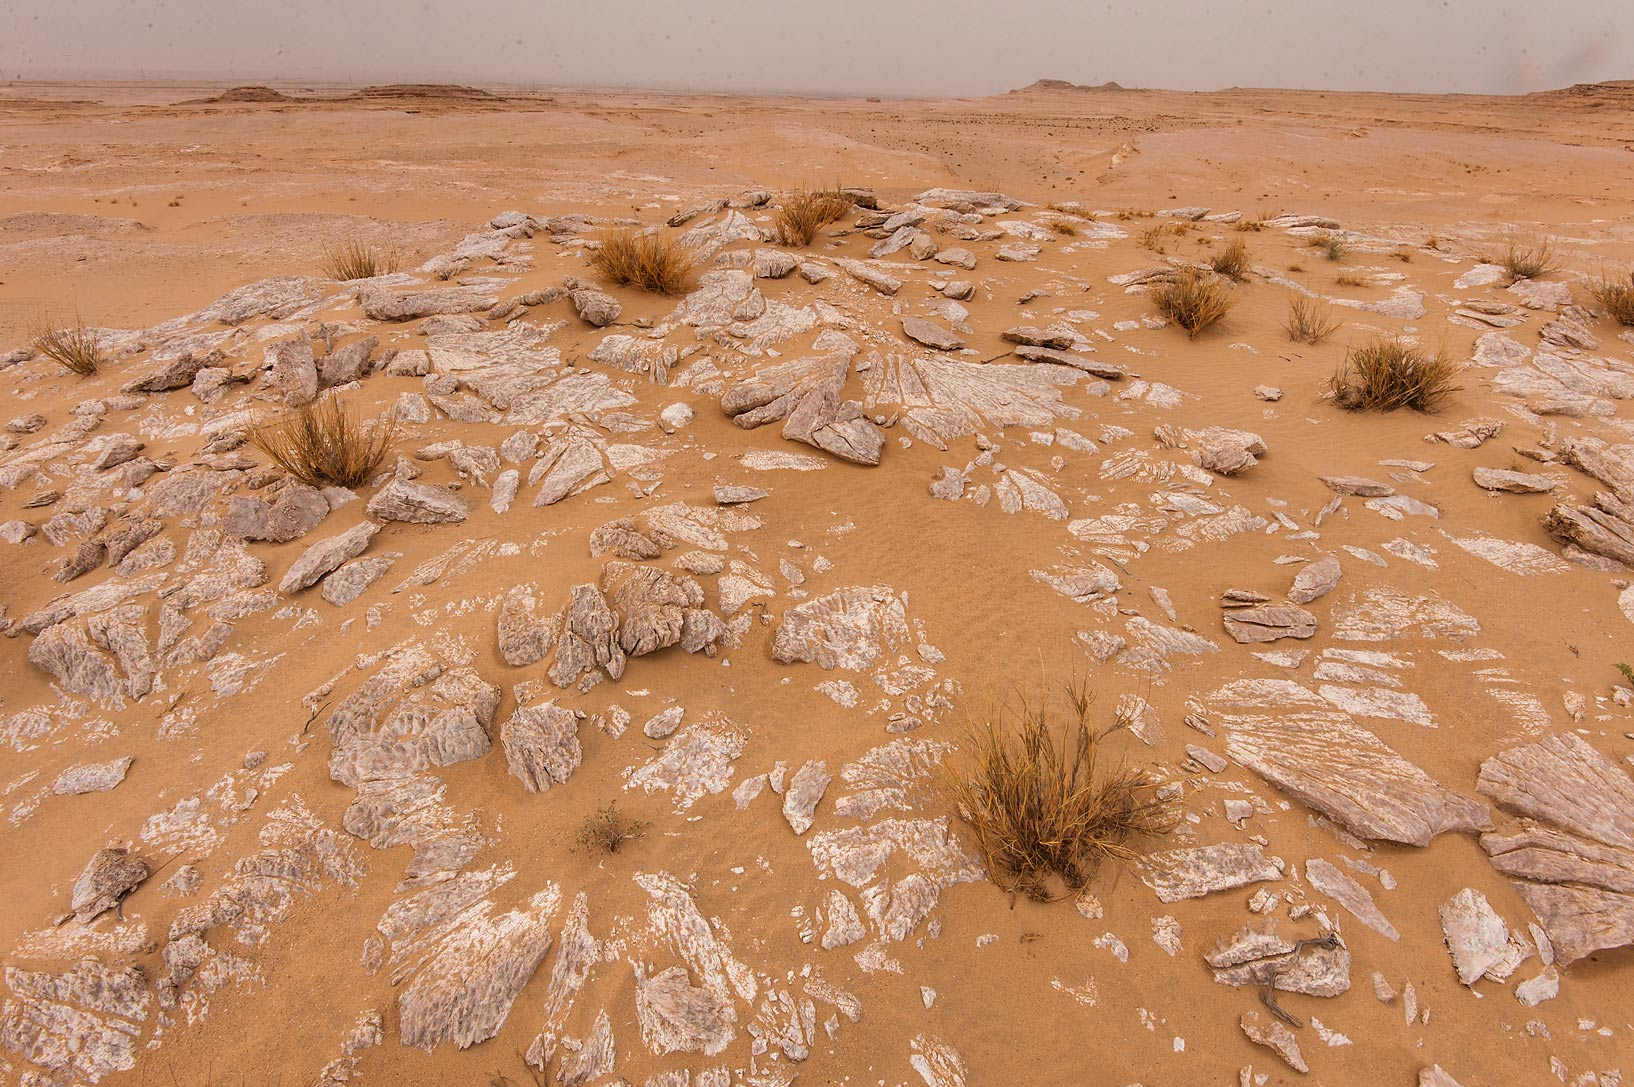 Pavement by gypsum crystals (selenite) in area of...near Salwa Rd. in southern Qatar